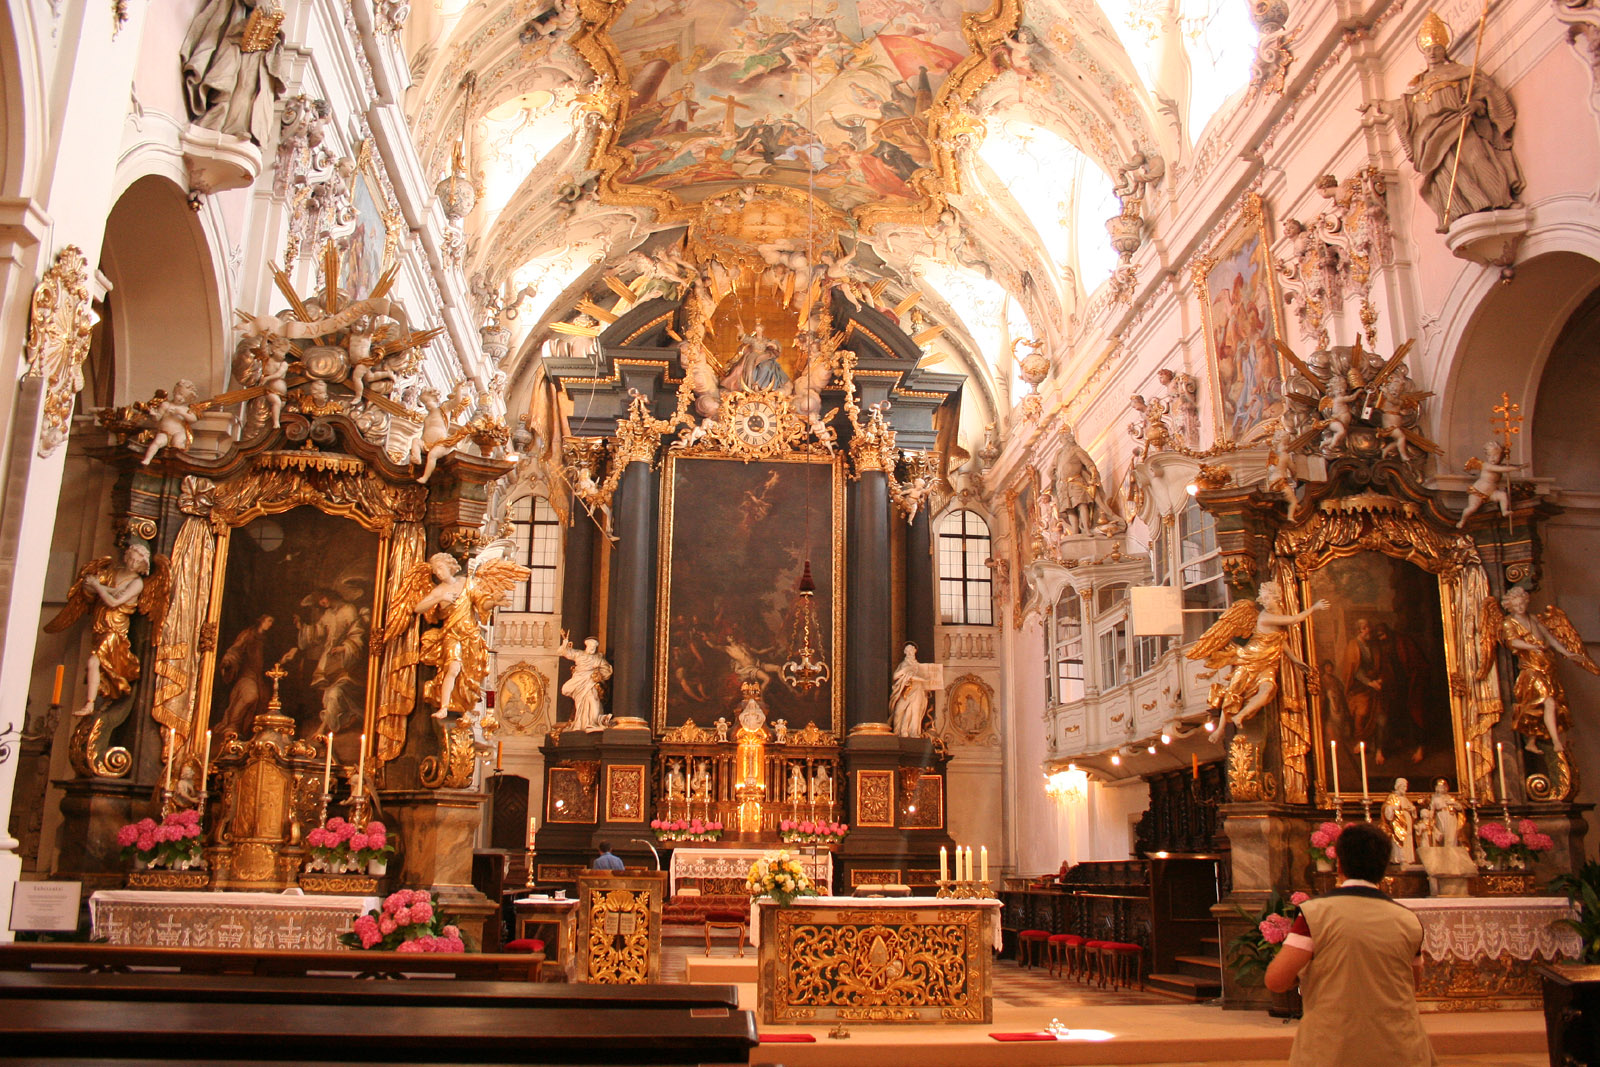 Baroque refurbishment of the medieval basilica of St Emmerams, Regensburg, from Wikimedia Commons